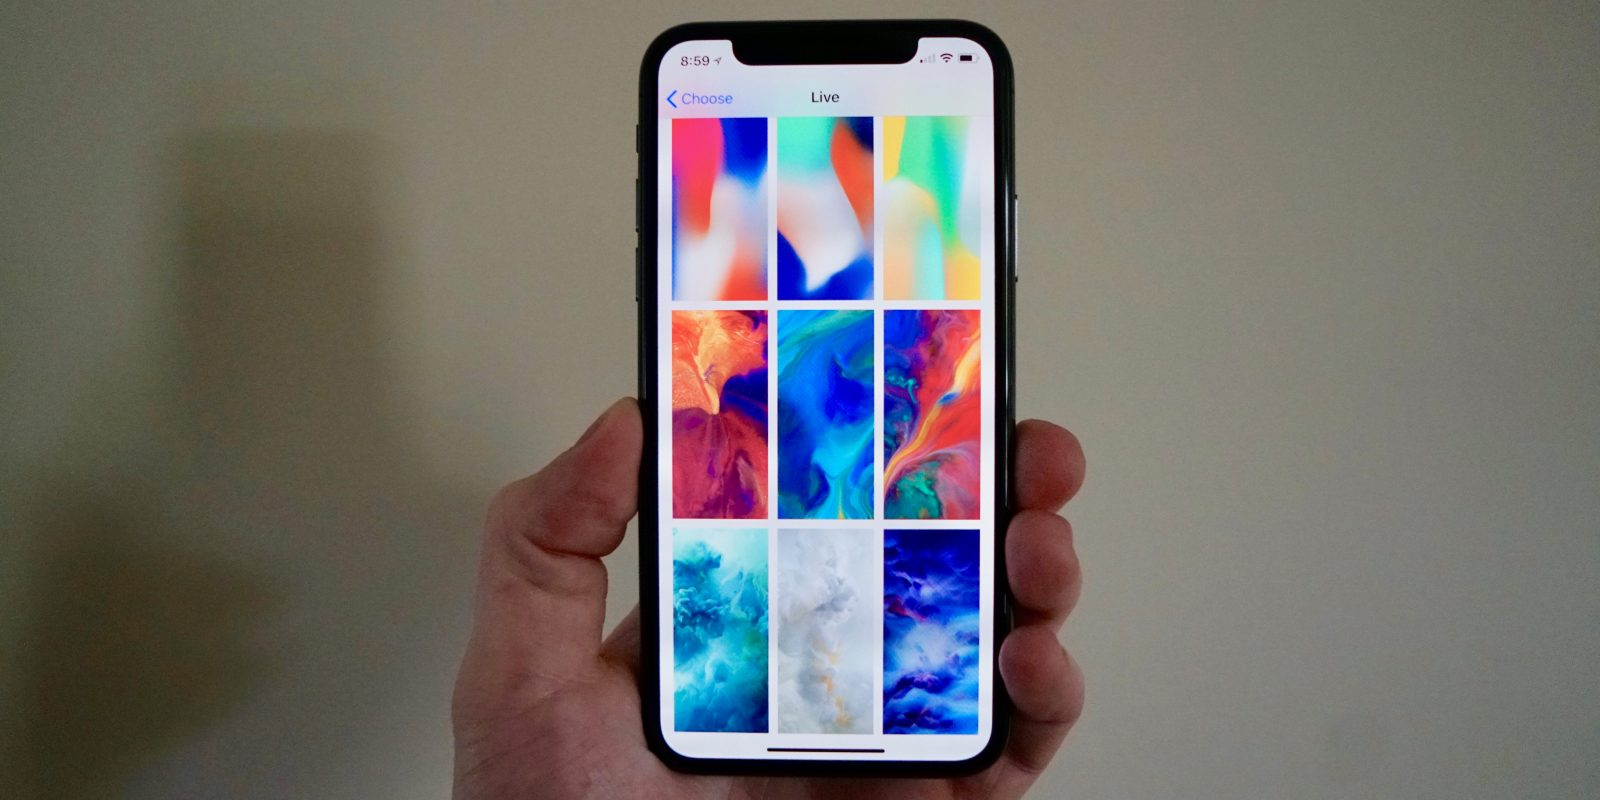 iphone x features new dynamic and new live wallpapers gallery